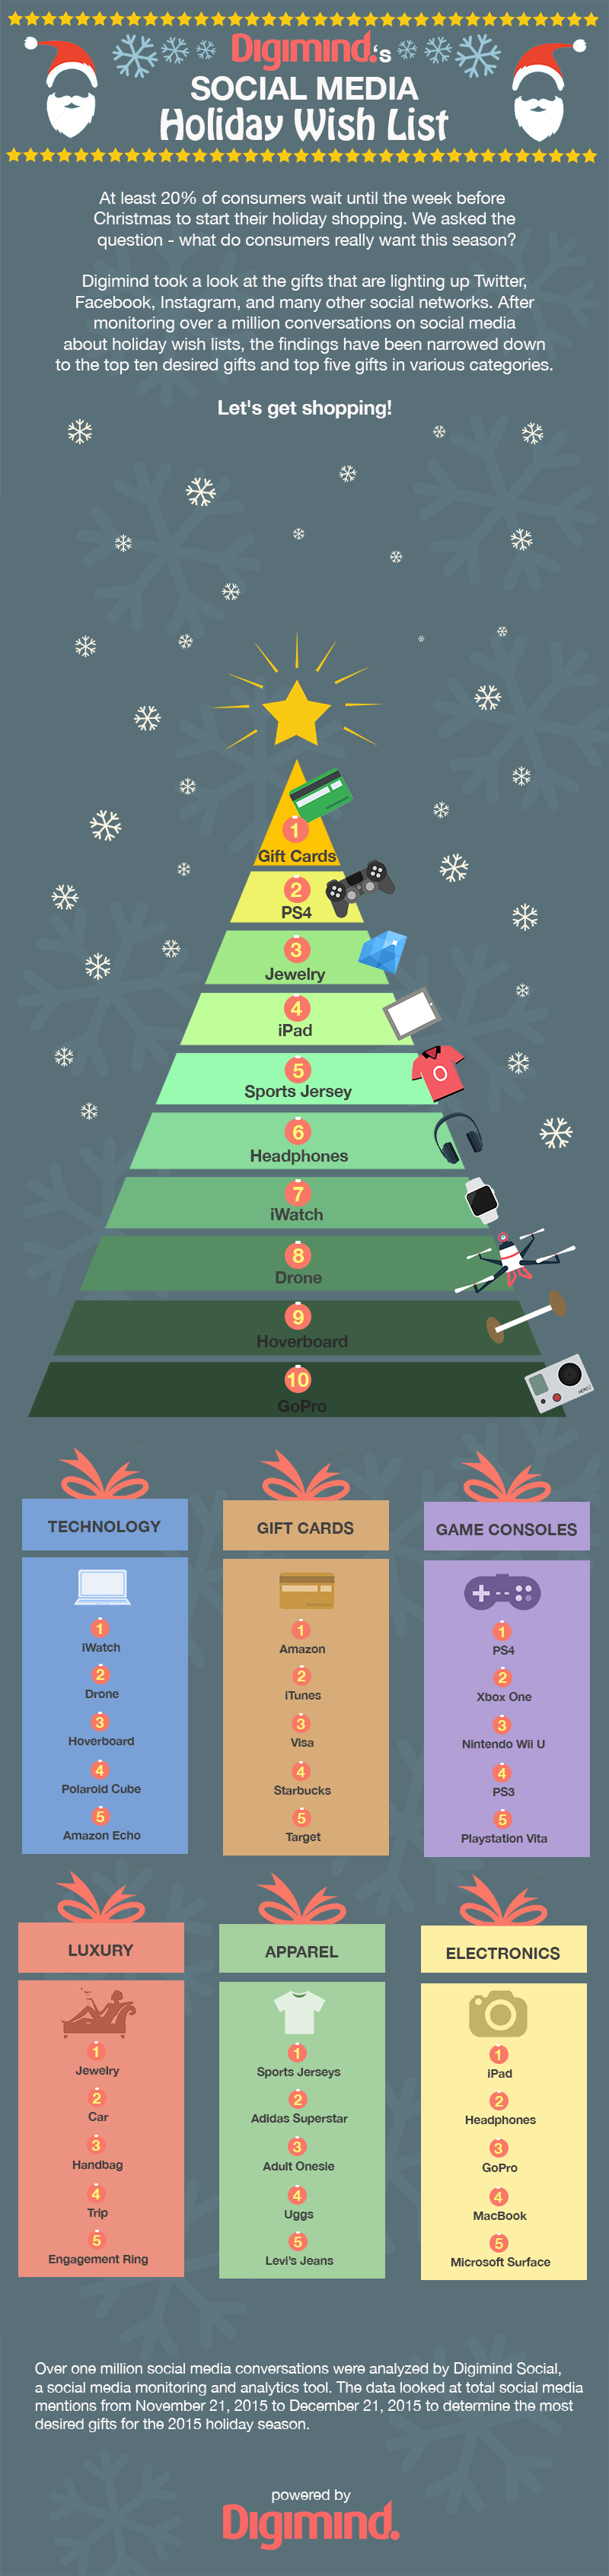 holiday-gift-wishlist-infographic